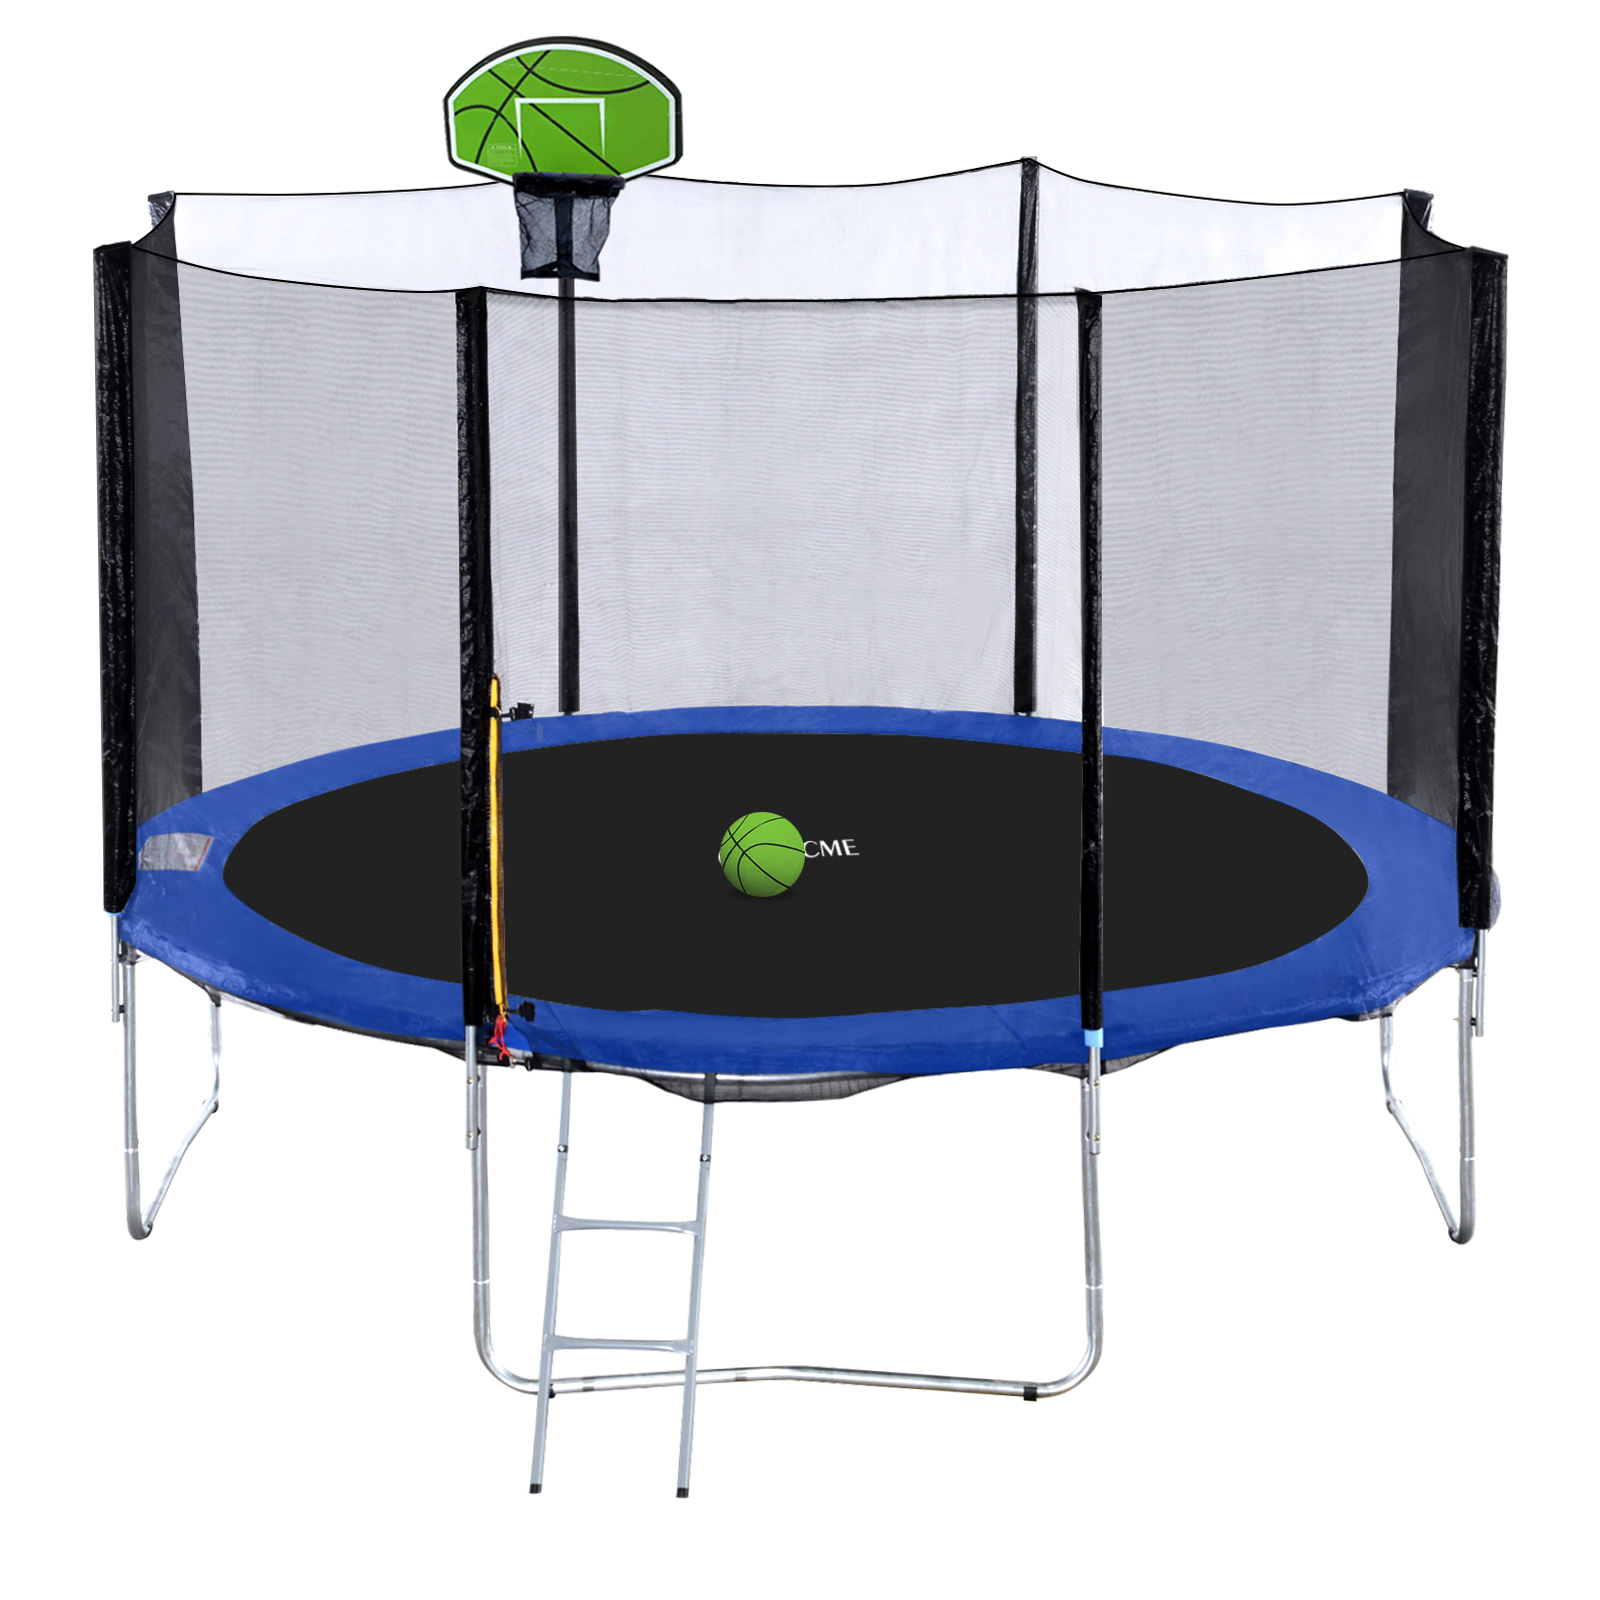 Exacme 12 FT Round Trampoline with Safety Pad,Enclosure Net,Ladder and Green Basketball Hoop,S-Series